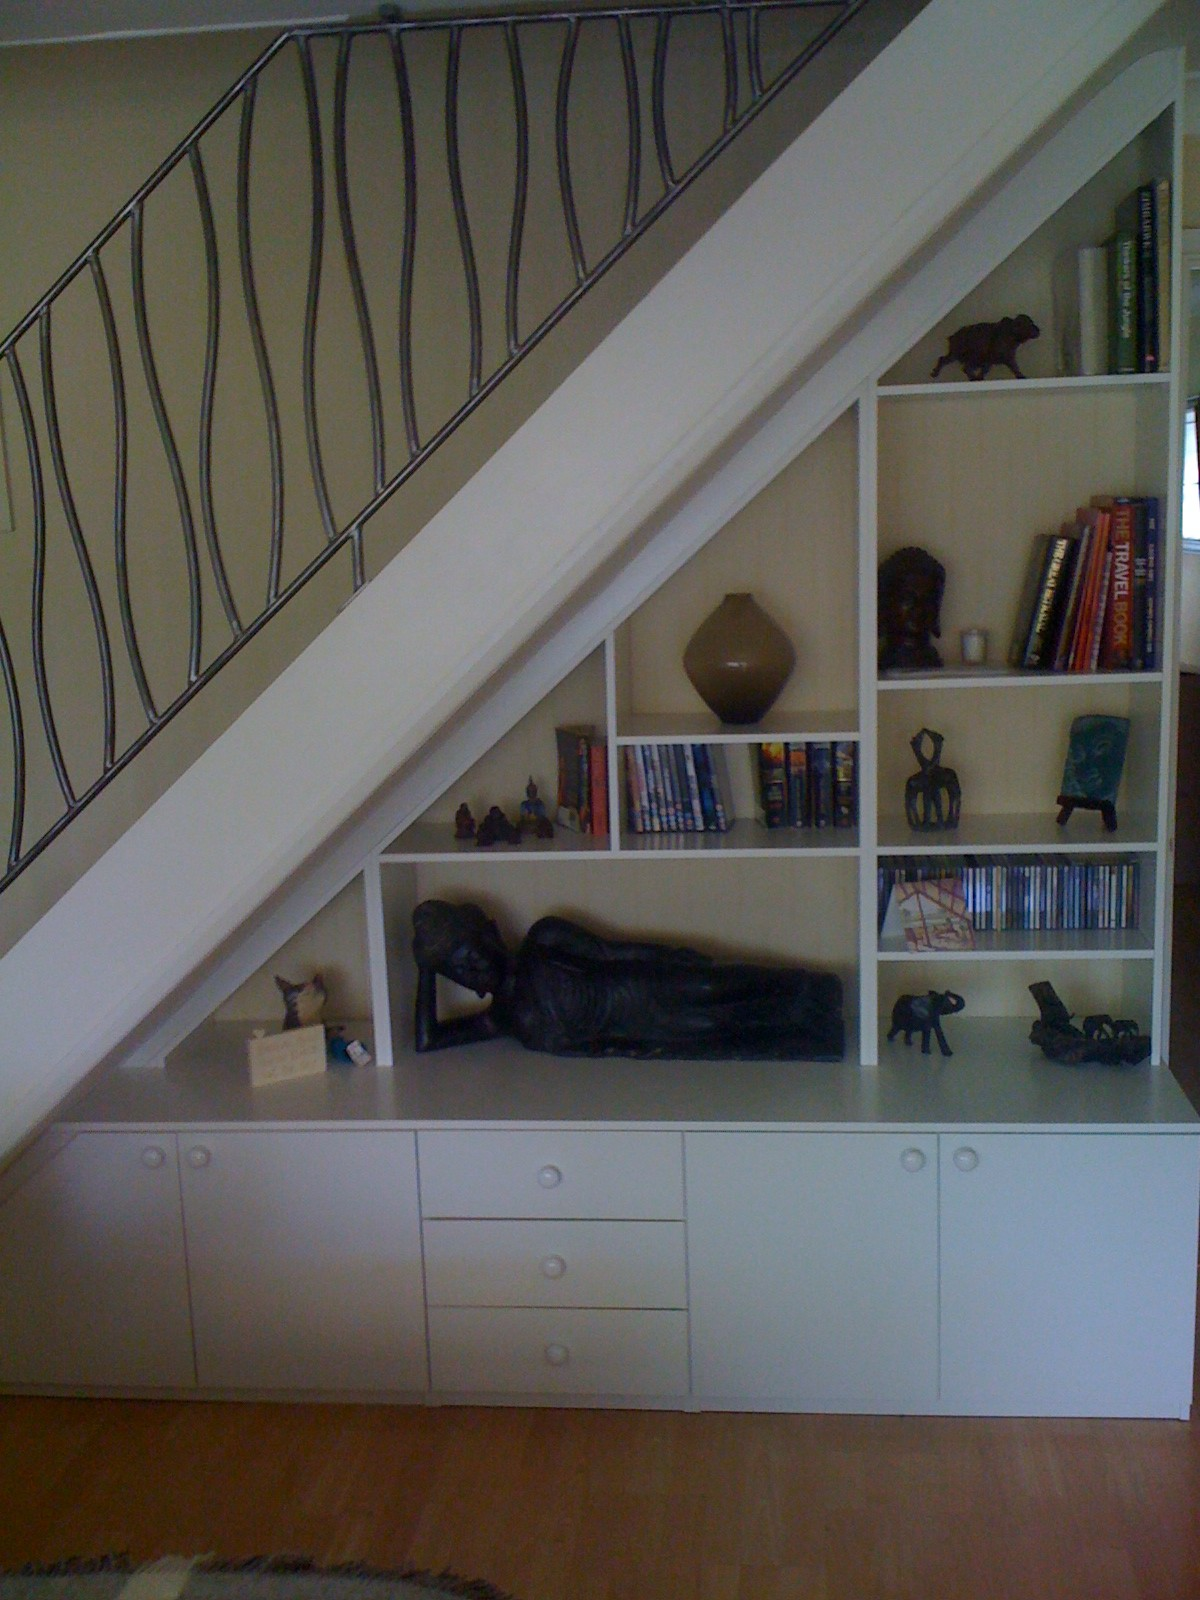 Bespoke Under Stairs Shelving: Bespoke Fitted Shelving Furniture: Making Use Of Space In